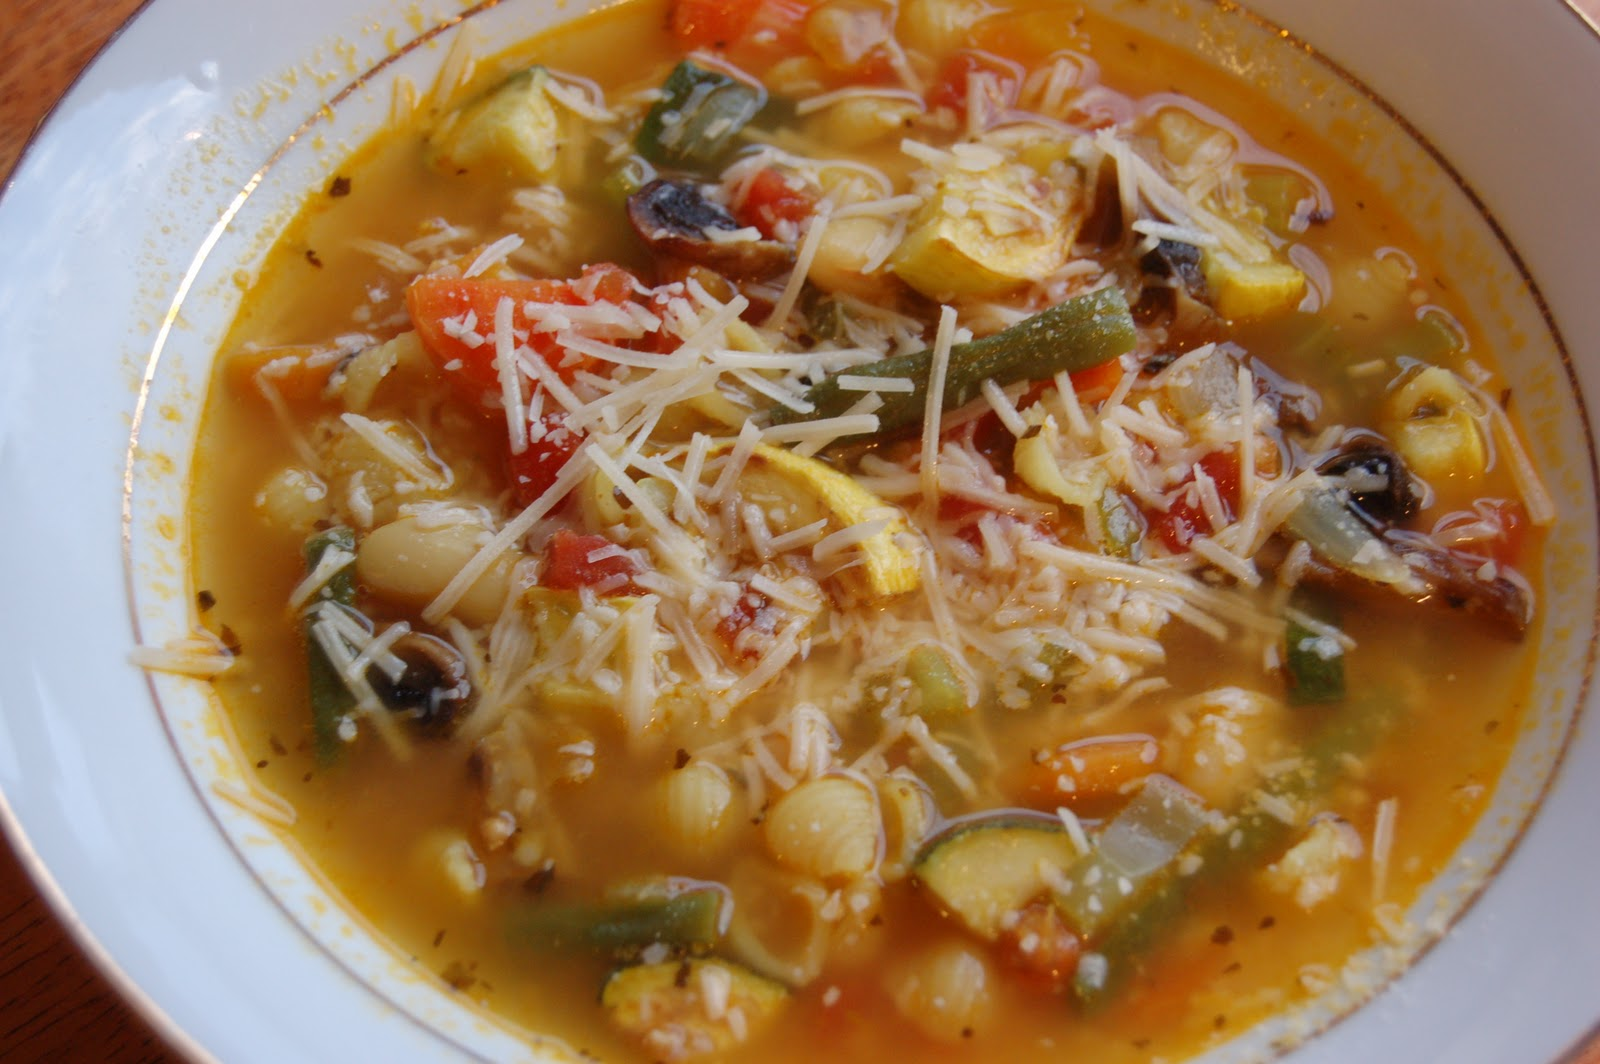 The Sparitarian: Roasted Vegetable Minestrone